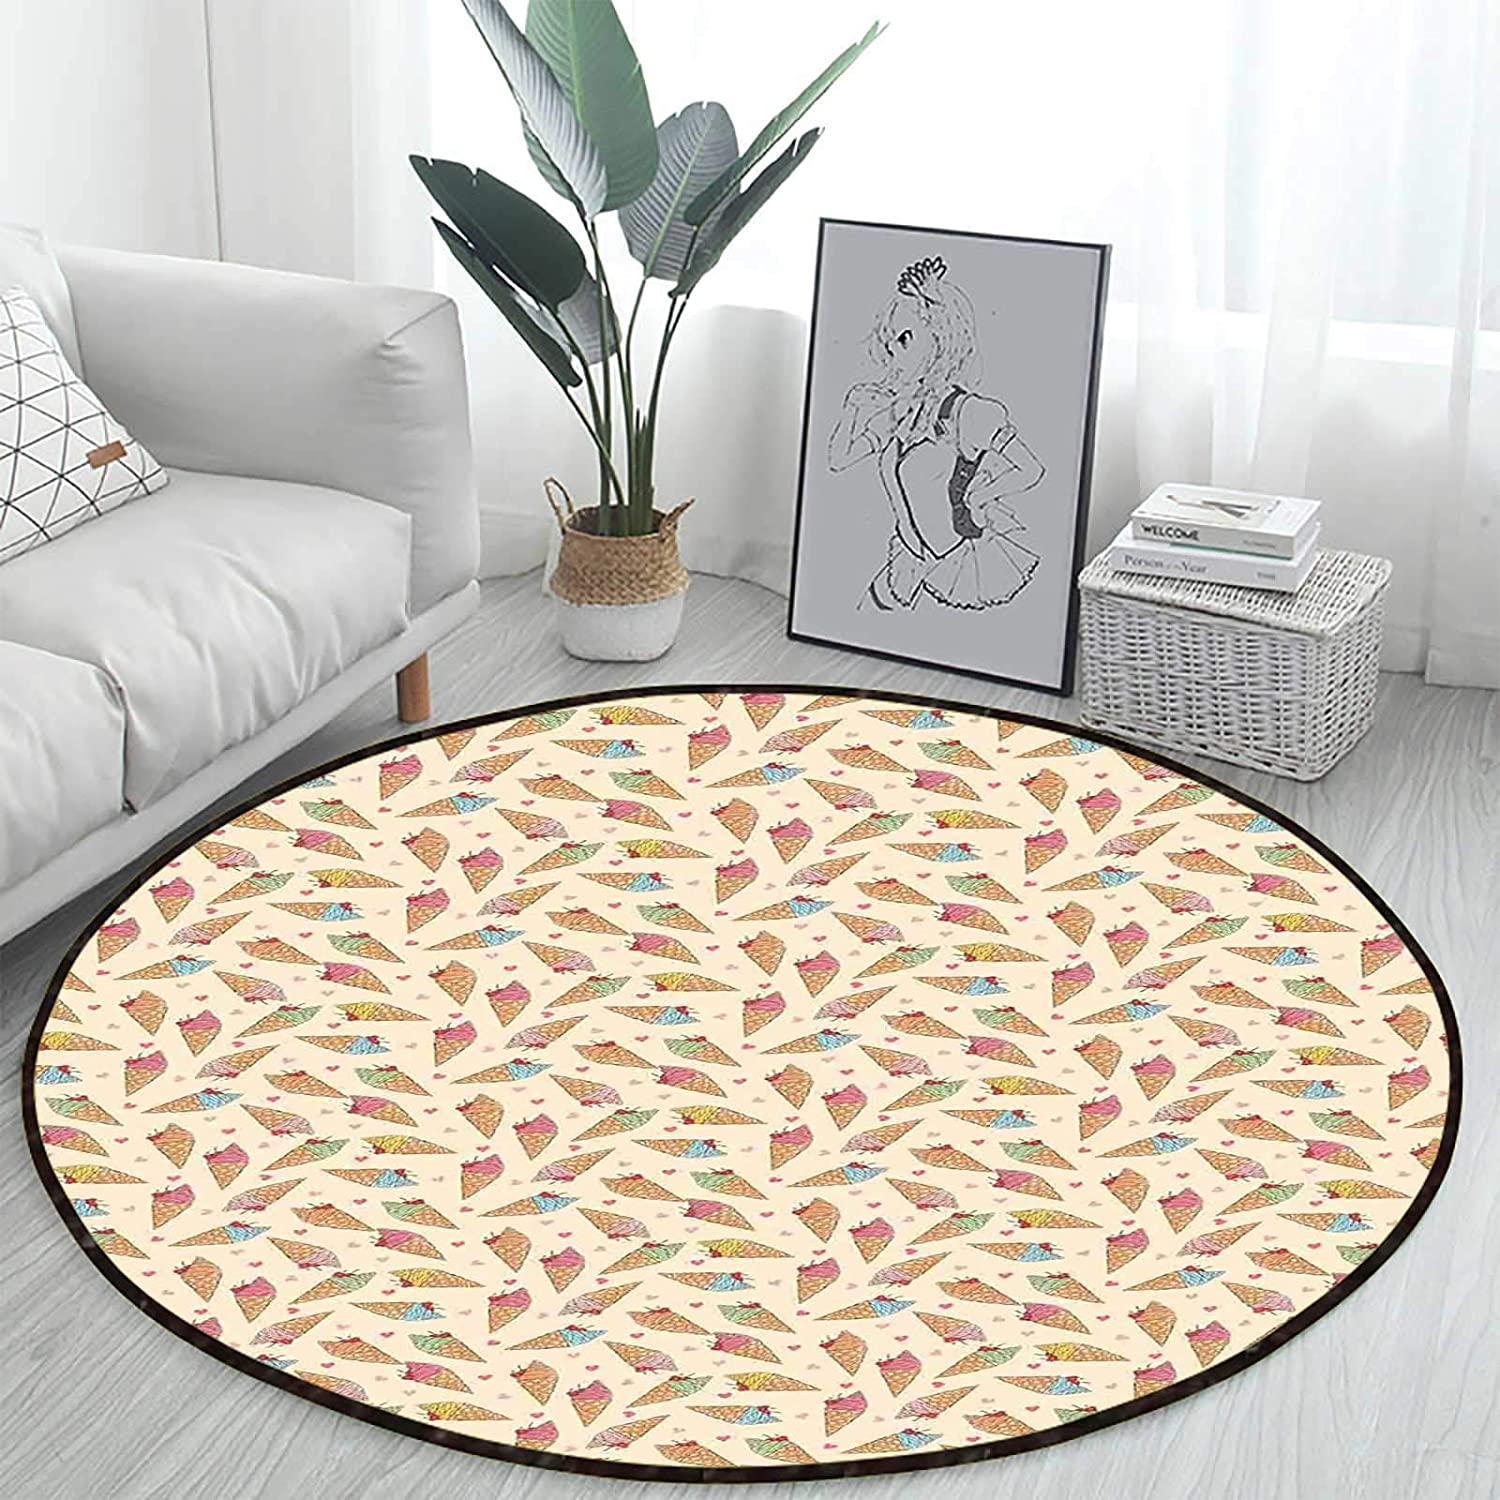 Waffle Cone Ice Creams Office Chair Mats Mat Max 46% OFF Swivel trend rank